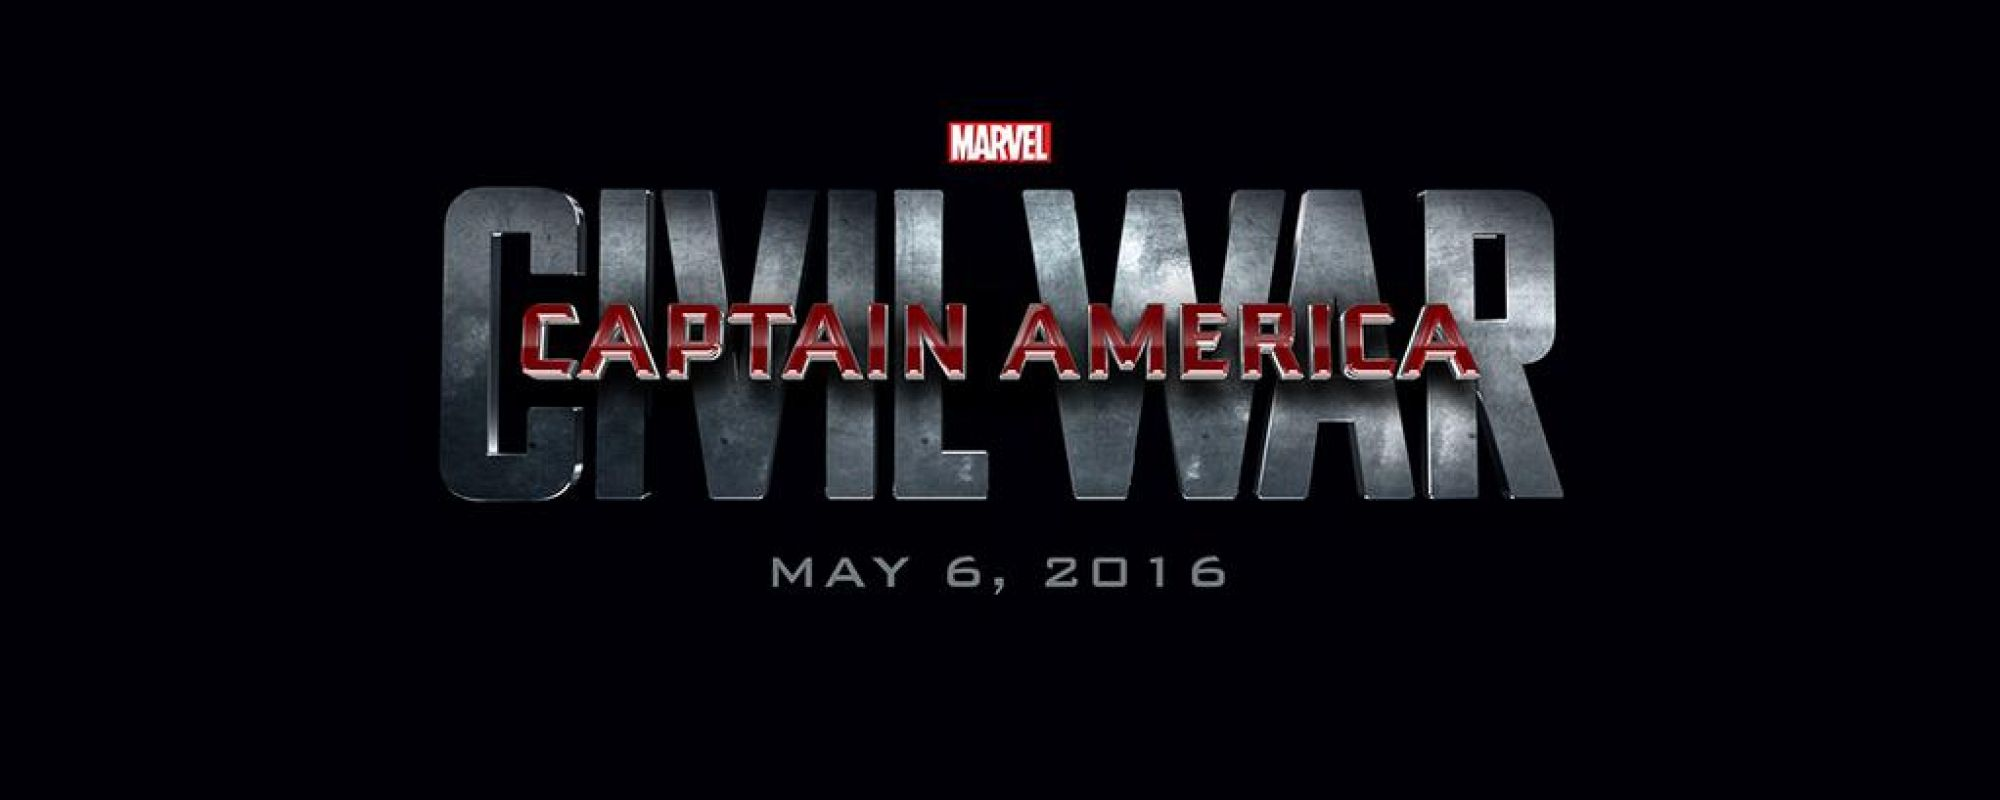 Captain America Civil War Logo